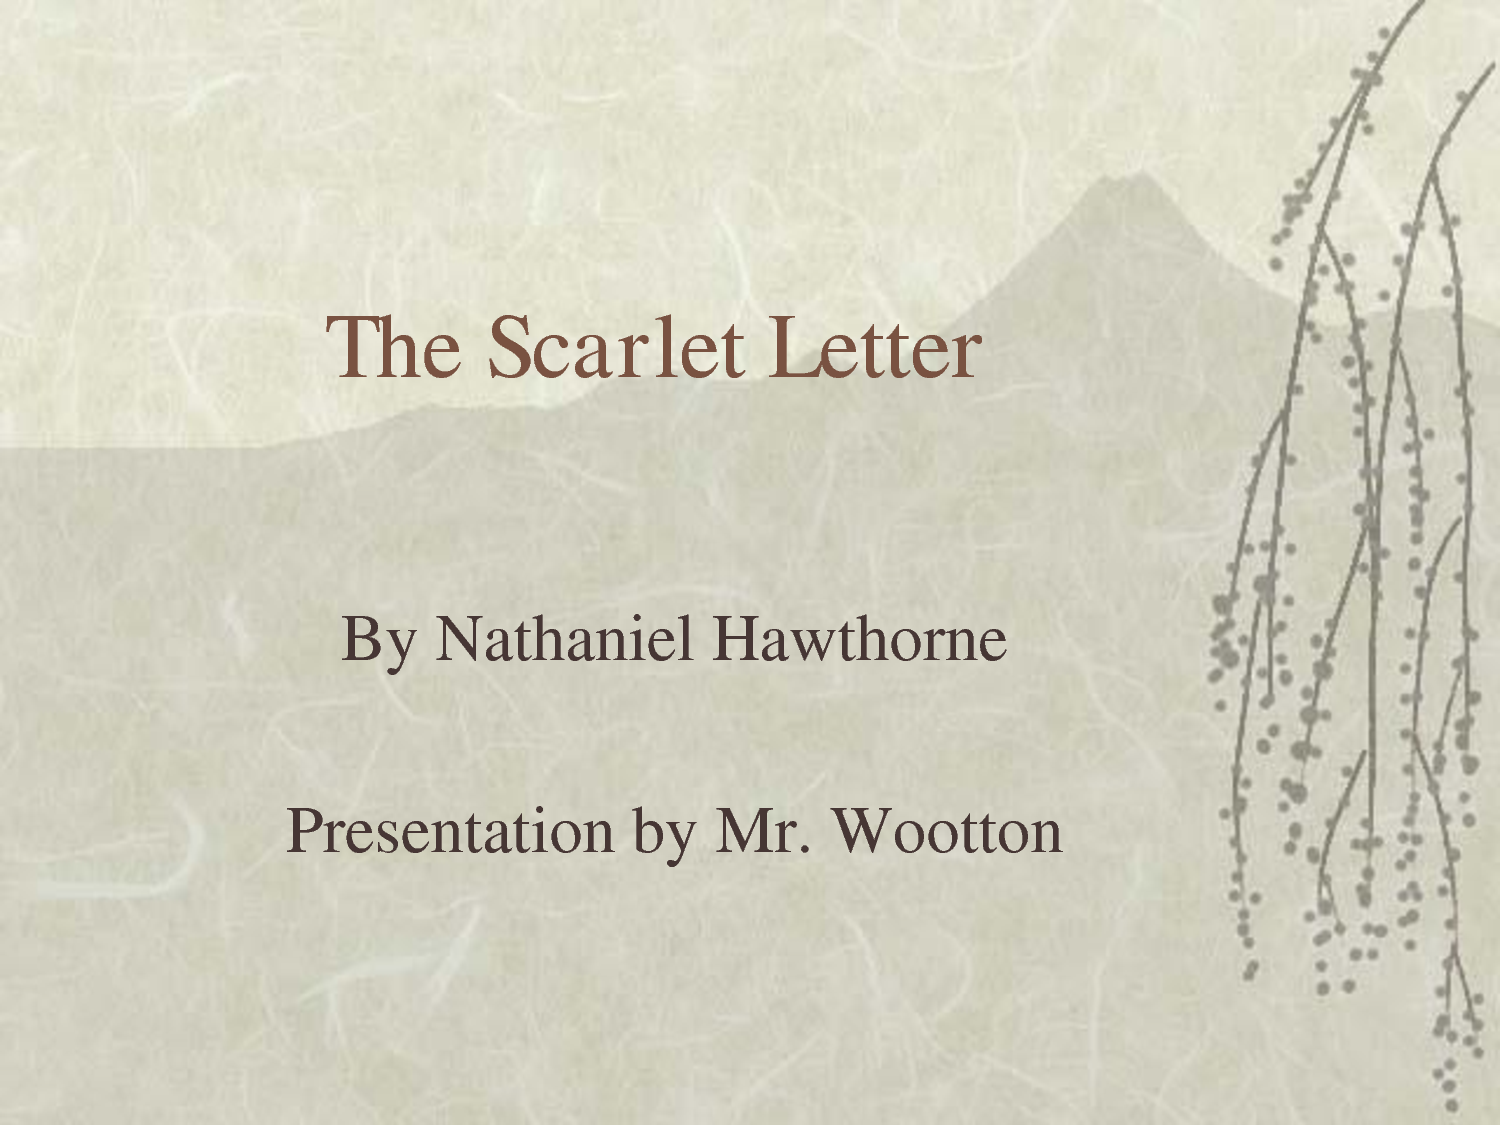 pearl exudes timeless beauty in the scarlet letter by nathaniel hawthorne This story, timeless and entertaining, exotic yet simple how is it possible for the beauty that was there only minutes before to vanish so quickly.